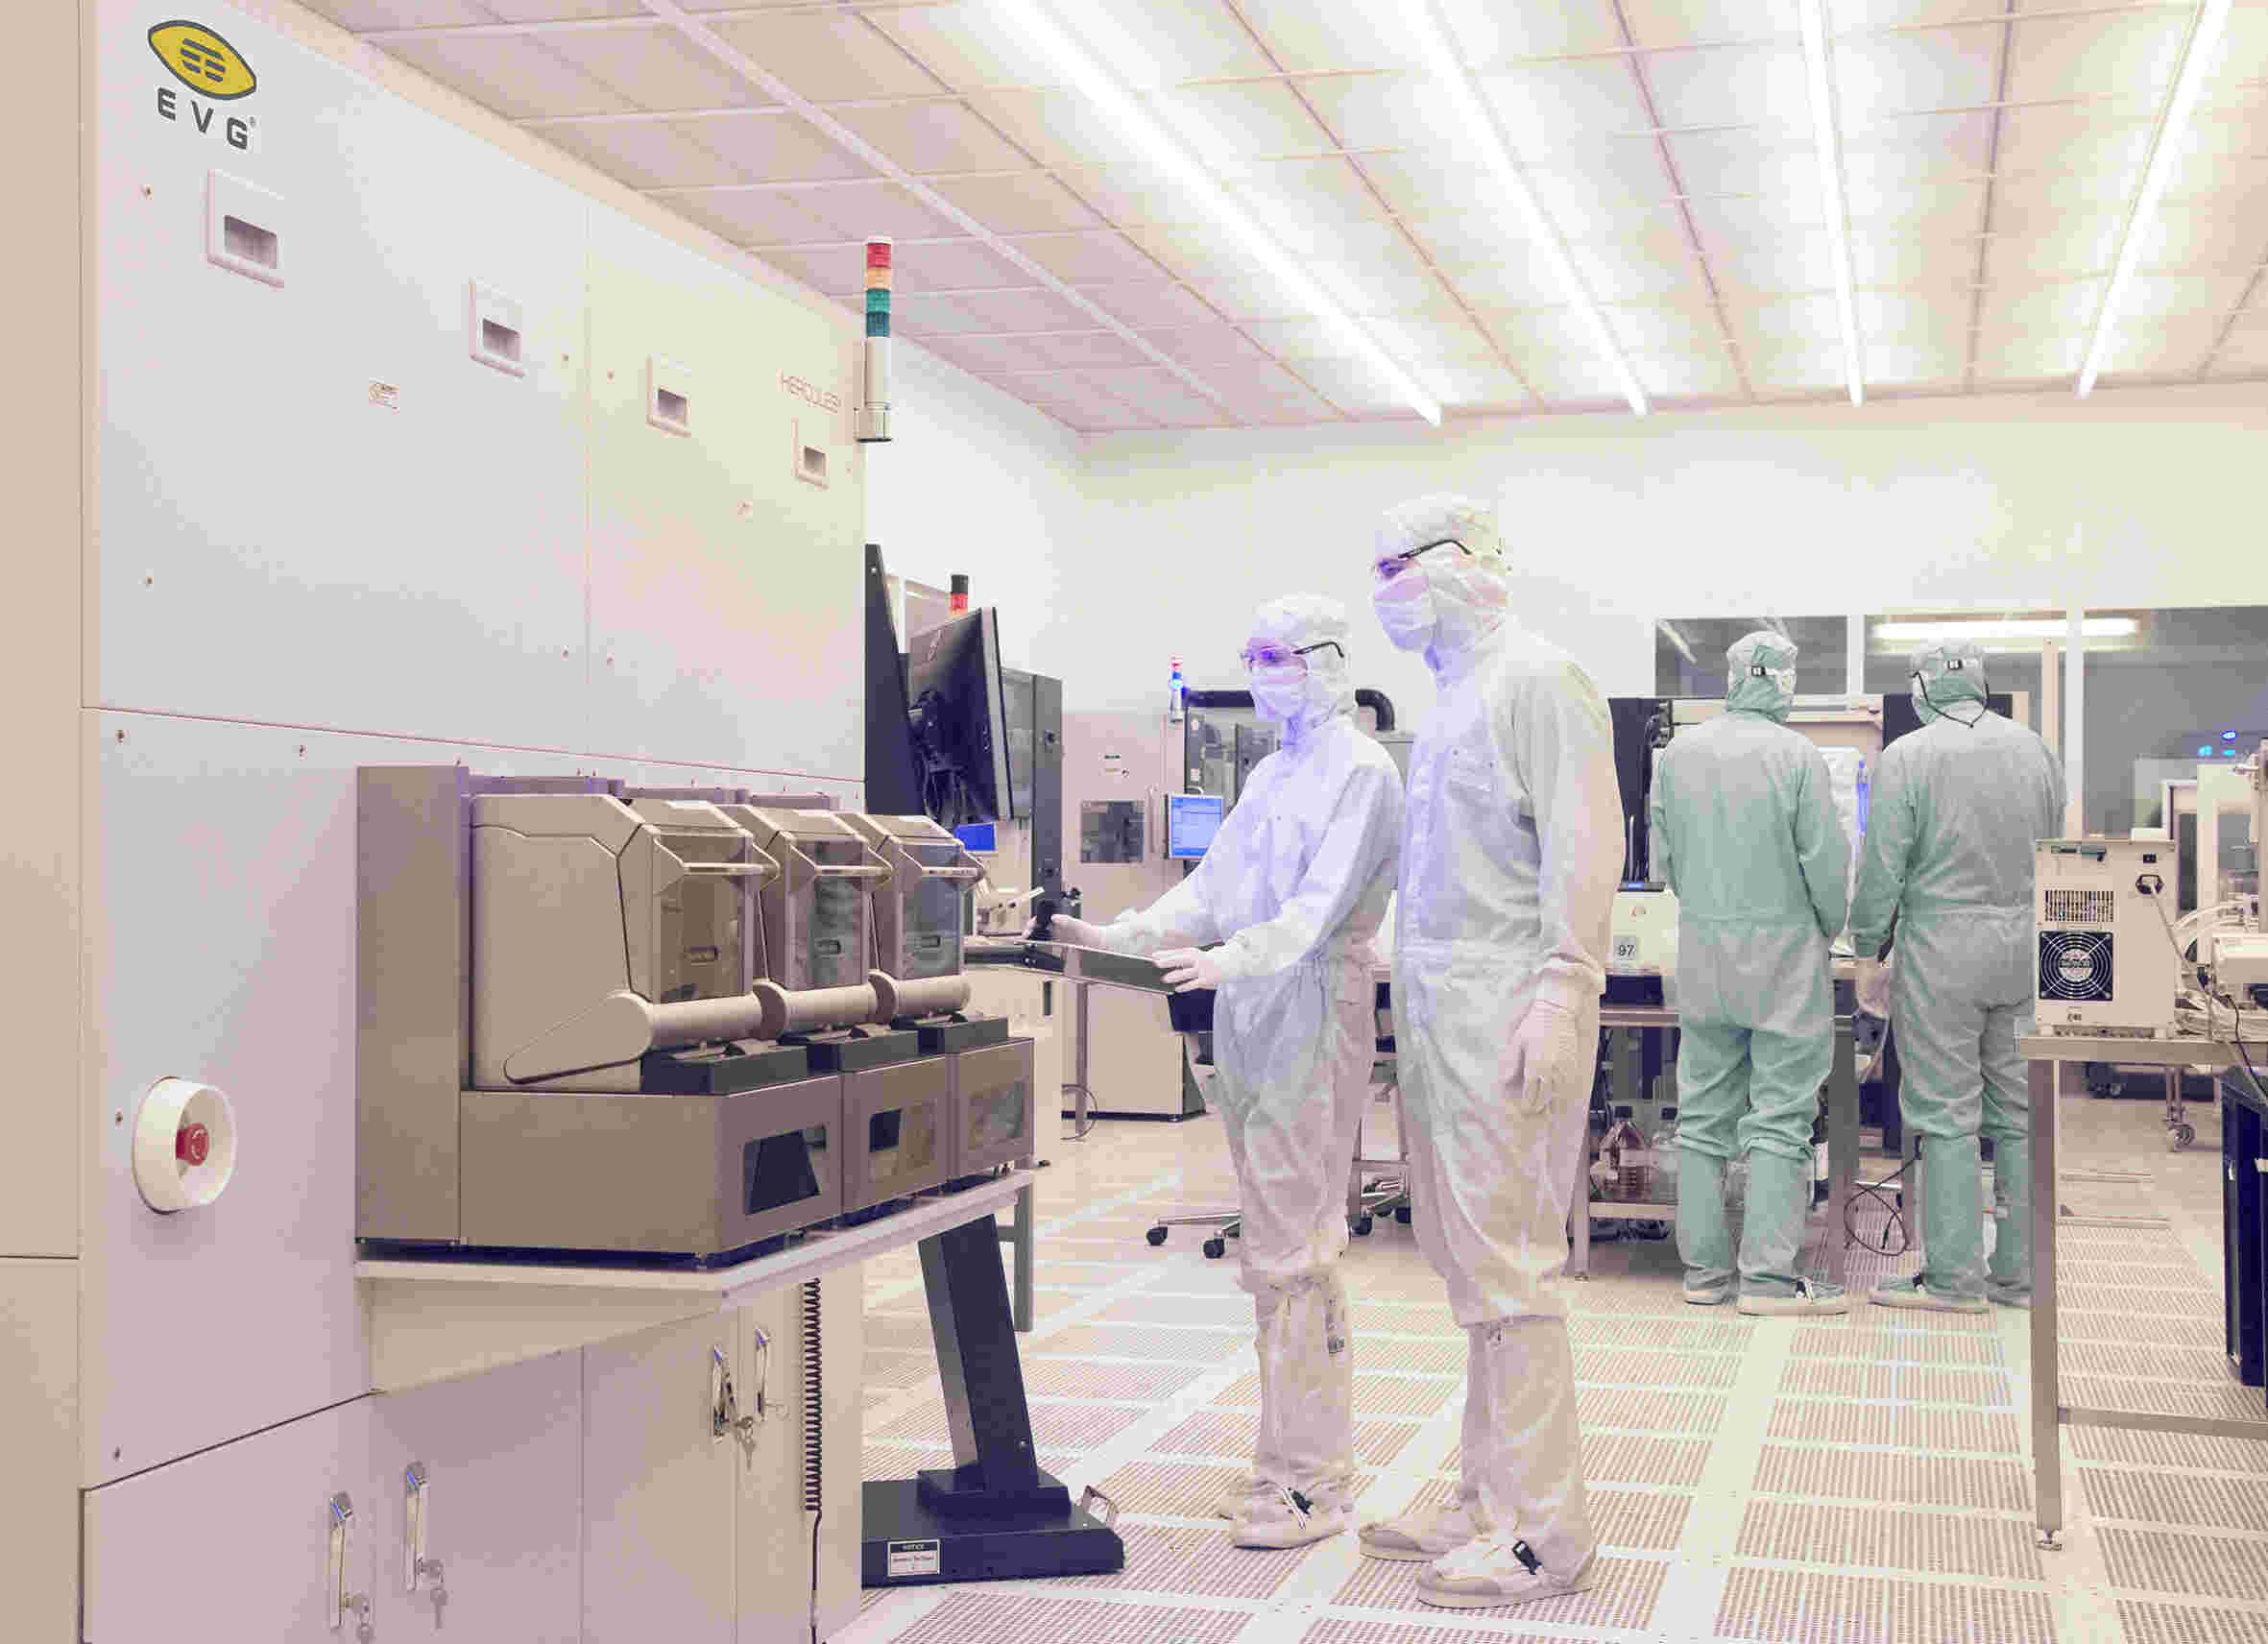 EVG's state-of-the art cleanroom facilities for process development